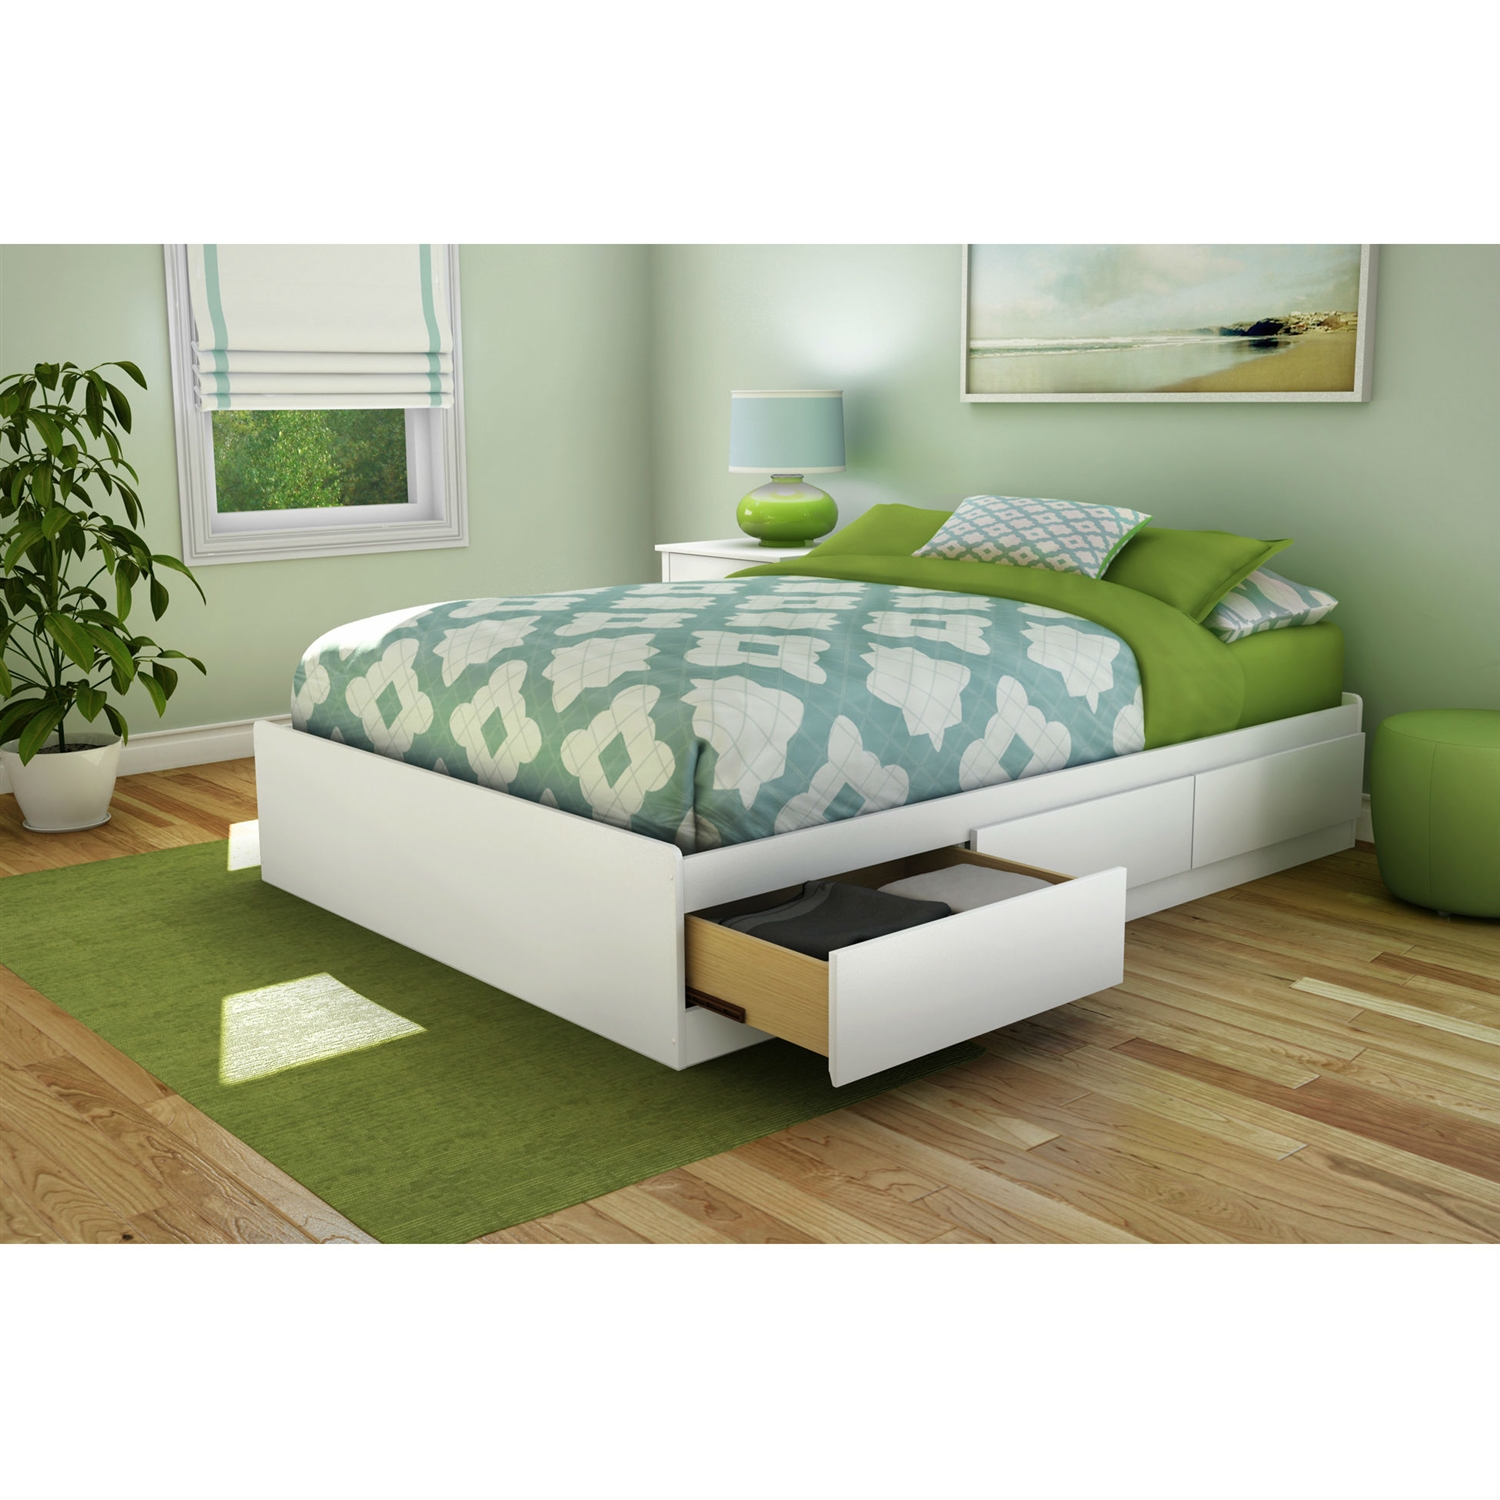 Picture of: Full Size Contemporary Platform Bed With 3 Storage Drawers In White Fastfurnishings Com